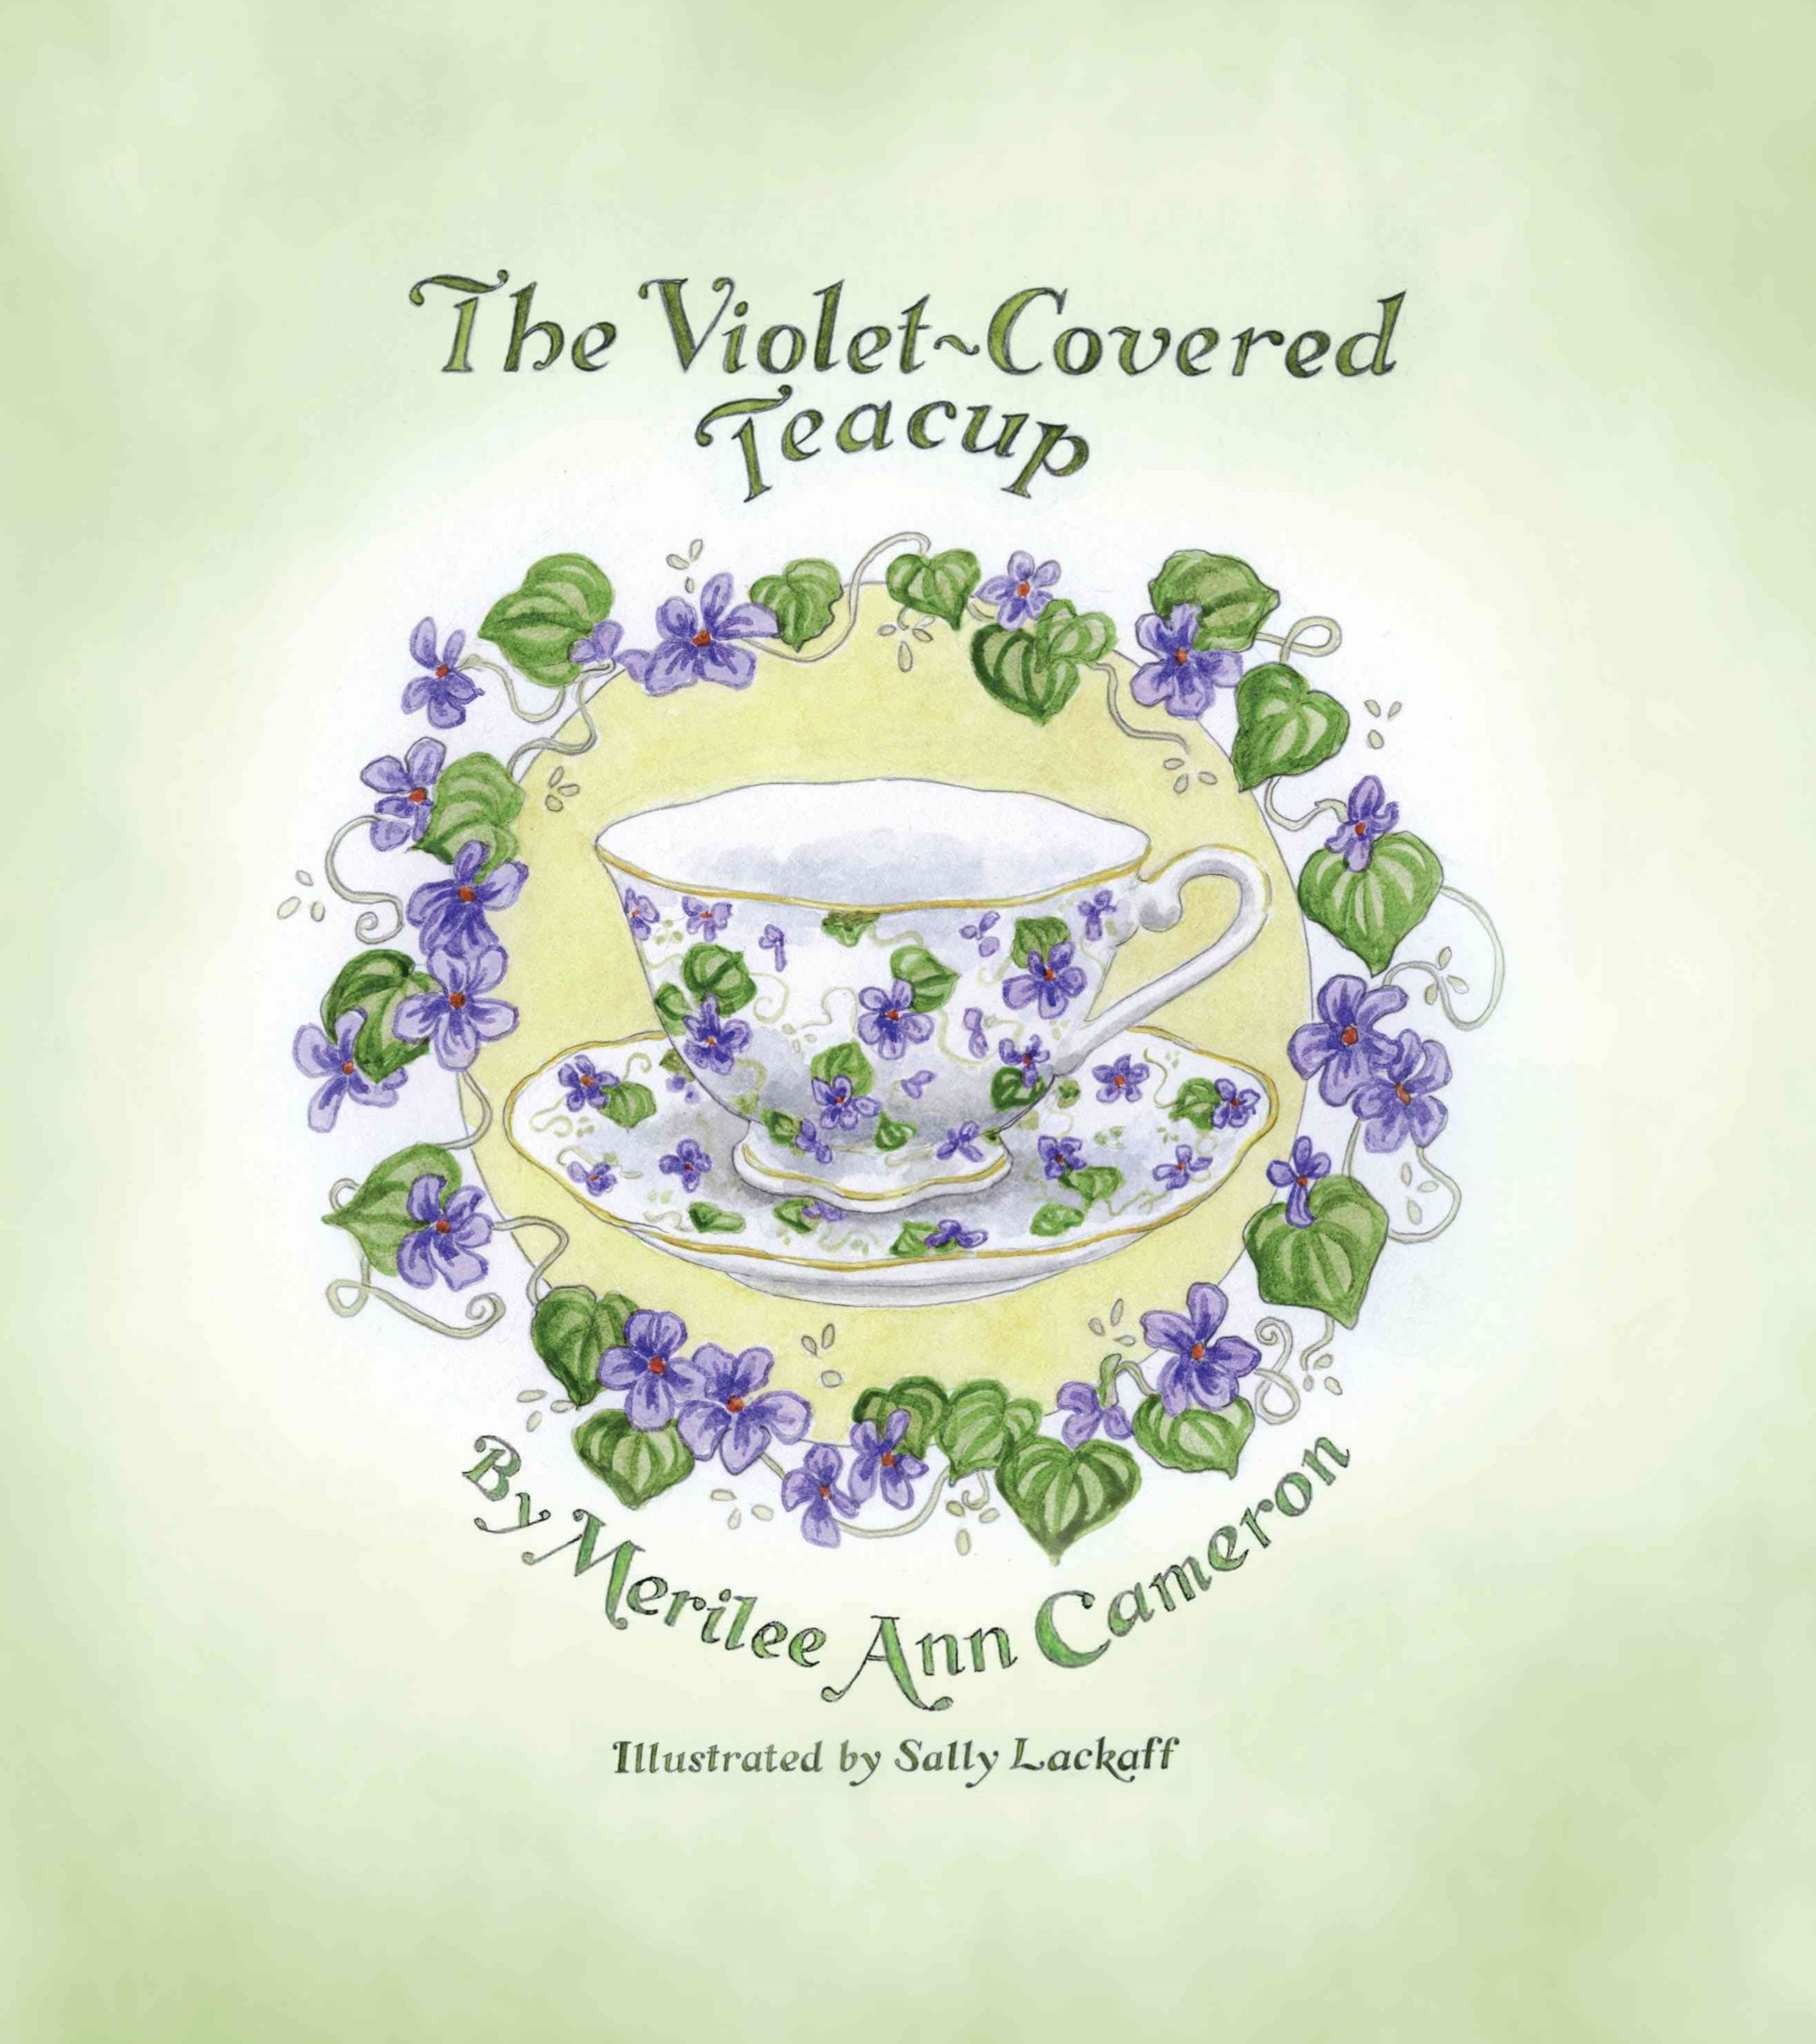 The Violet-Covered Teacup